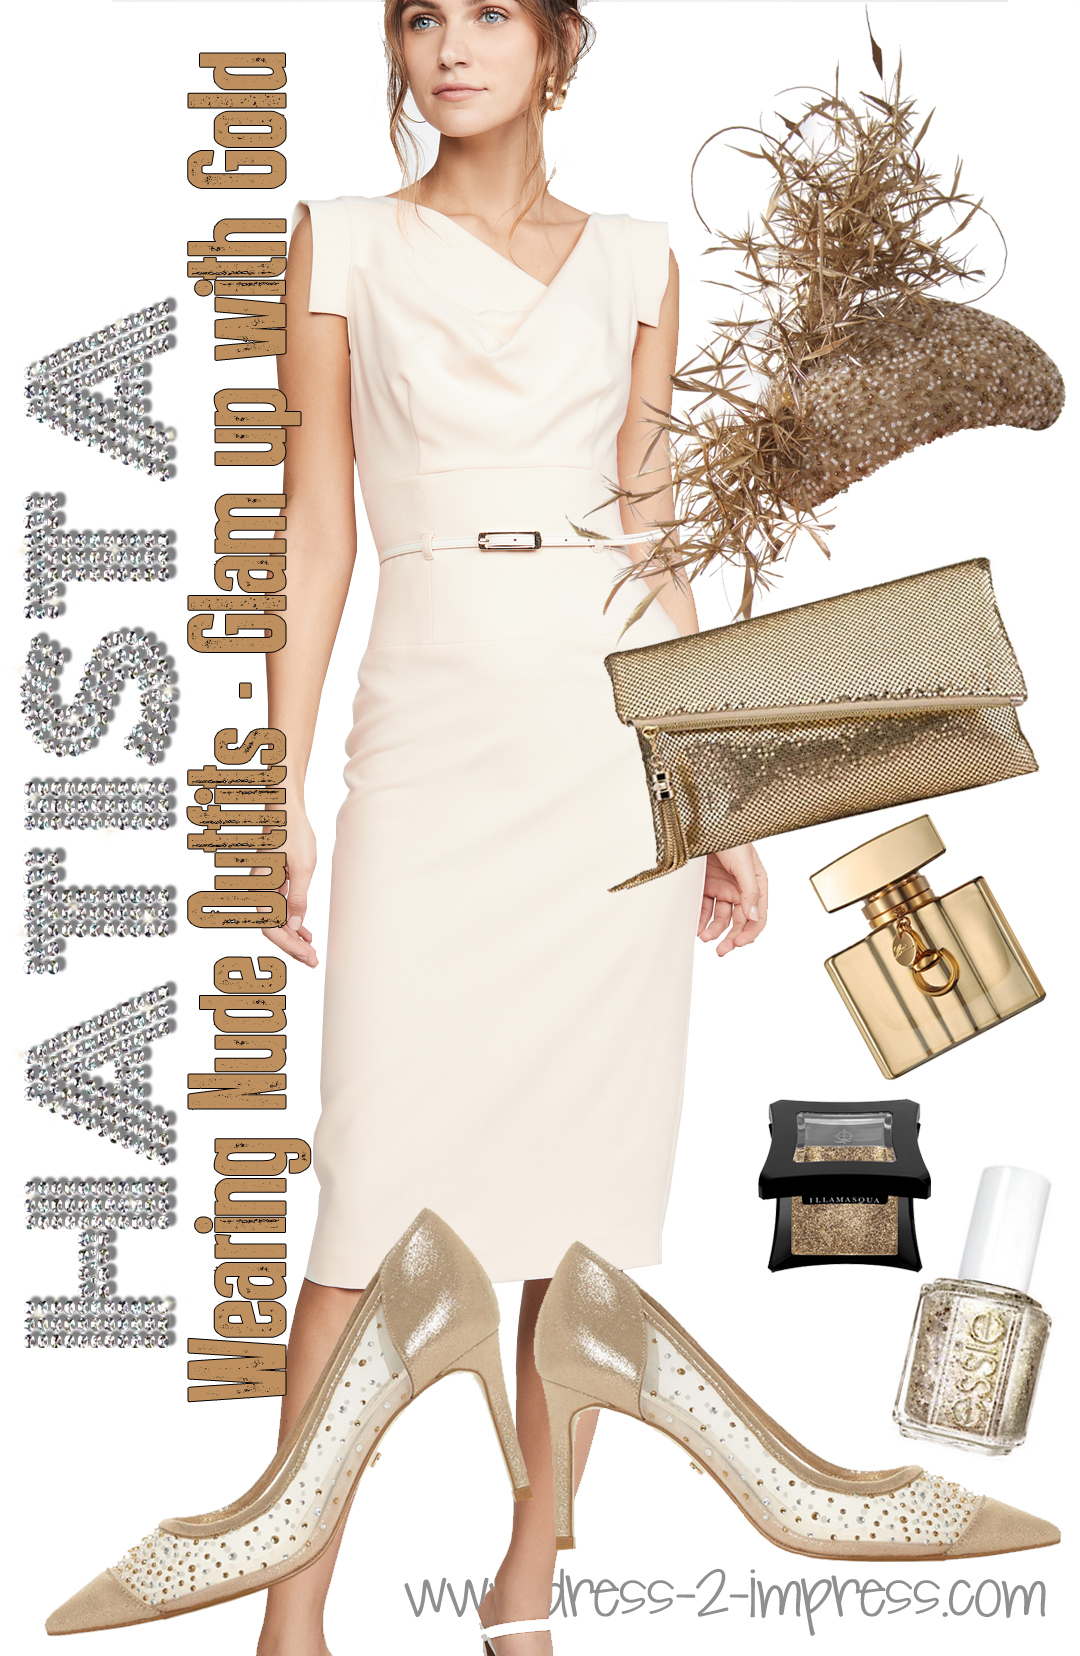 How to wear Metallics for daywear, What to wear with a Nude Dress. What to wear to Royal Ascot. Hervé Léger Marina Dress. Outfit ideas for Winter Weddings, Melbourne Cup Outfits. Mother of the Bride Outfits ideas from THE HATISTA www.dress-2-impress.com. What to wear to the Races. #wearmetallics #kentuckyderby #motherofthebride #ascothats #derbyhats